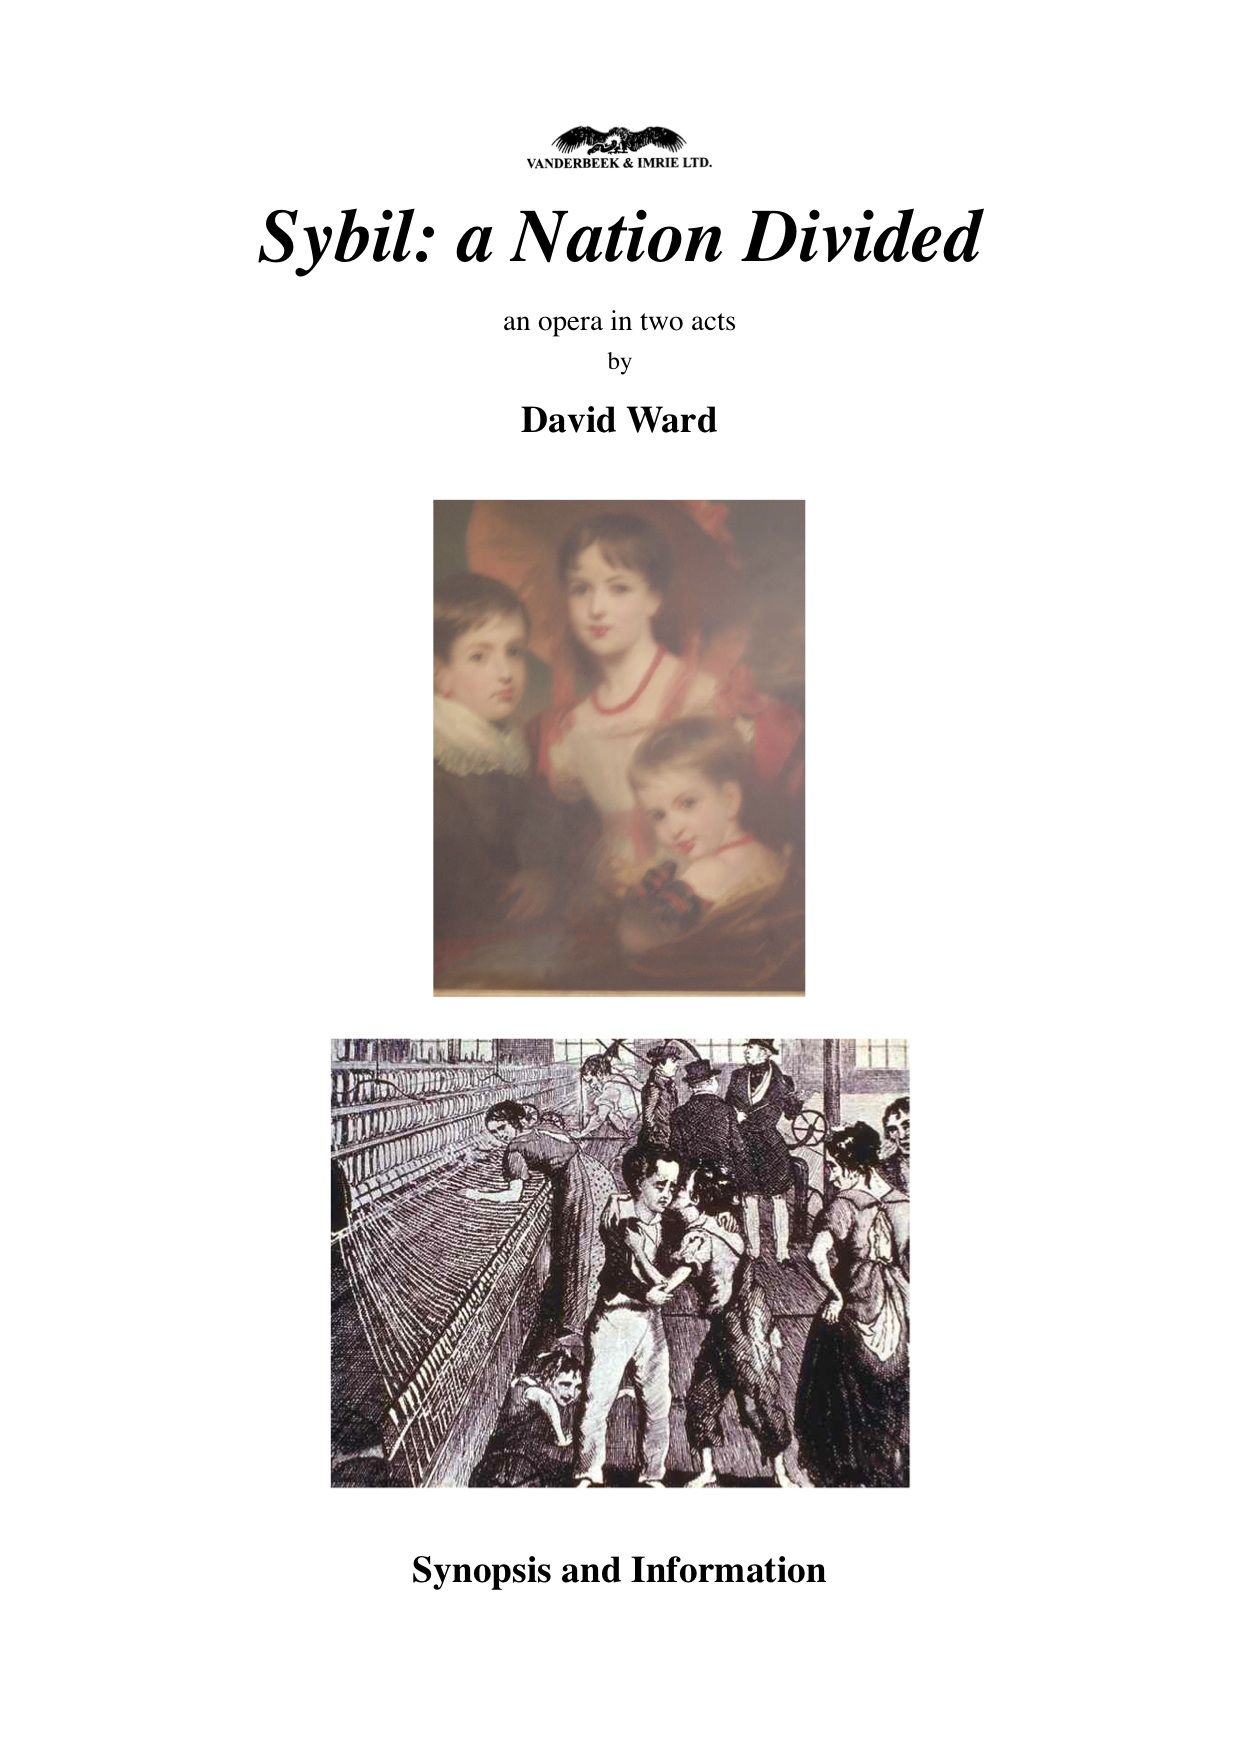 Sybil cover and info